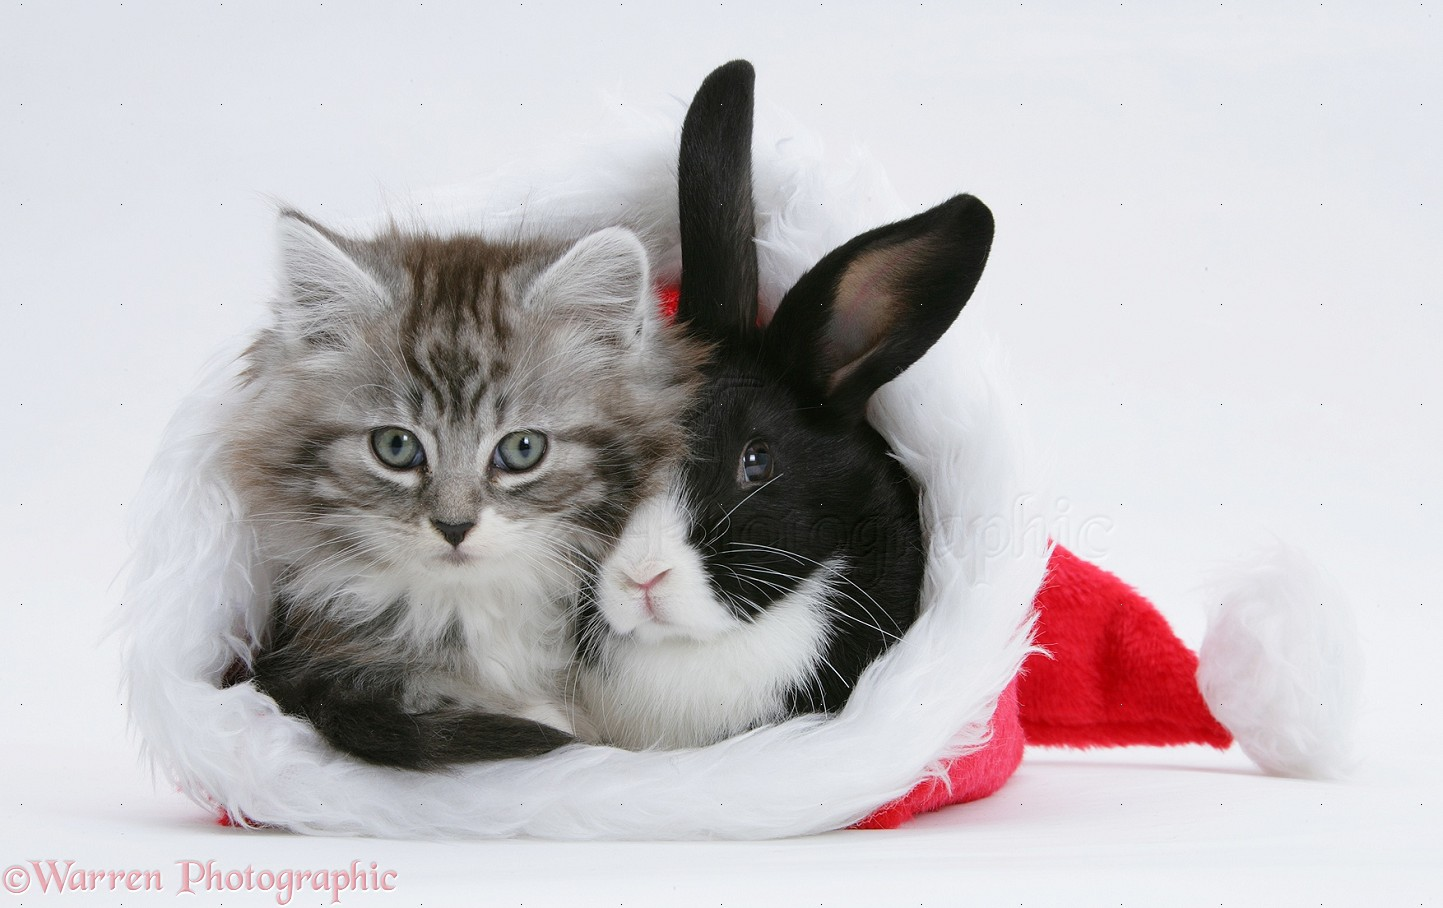 Pets: Maine Coon kitten and baby rabbit in a Santa hat photo WP18662